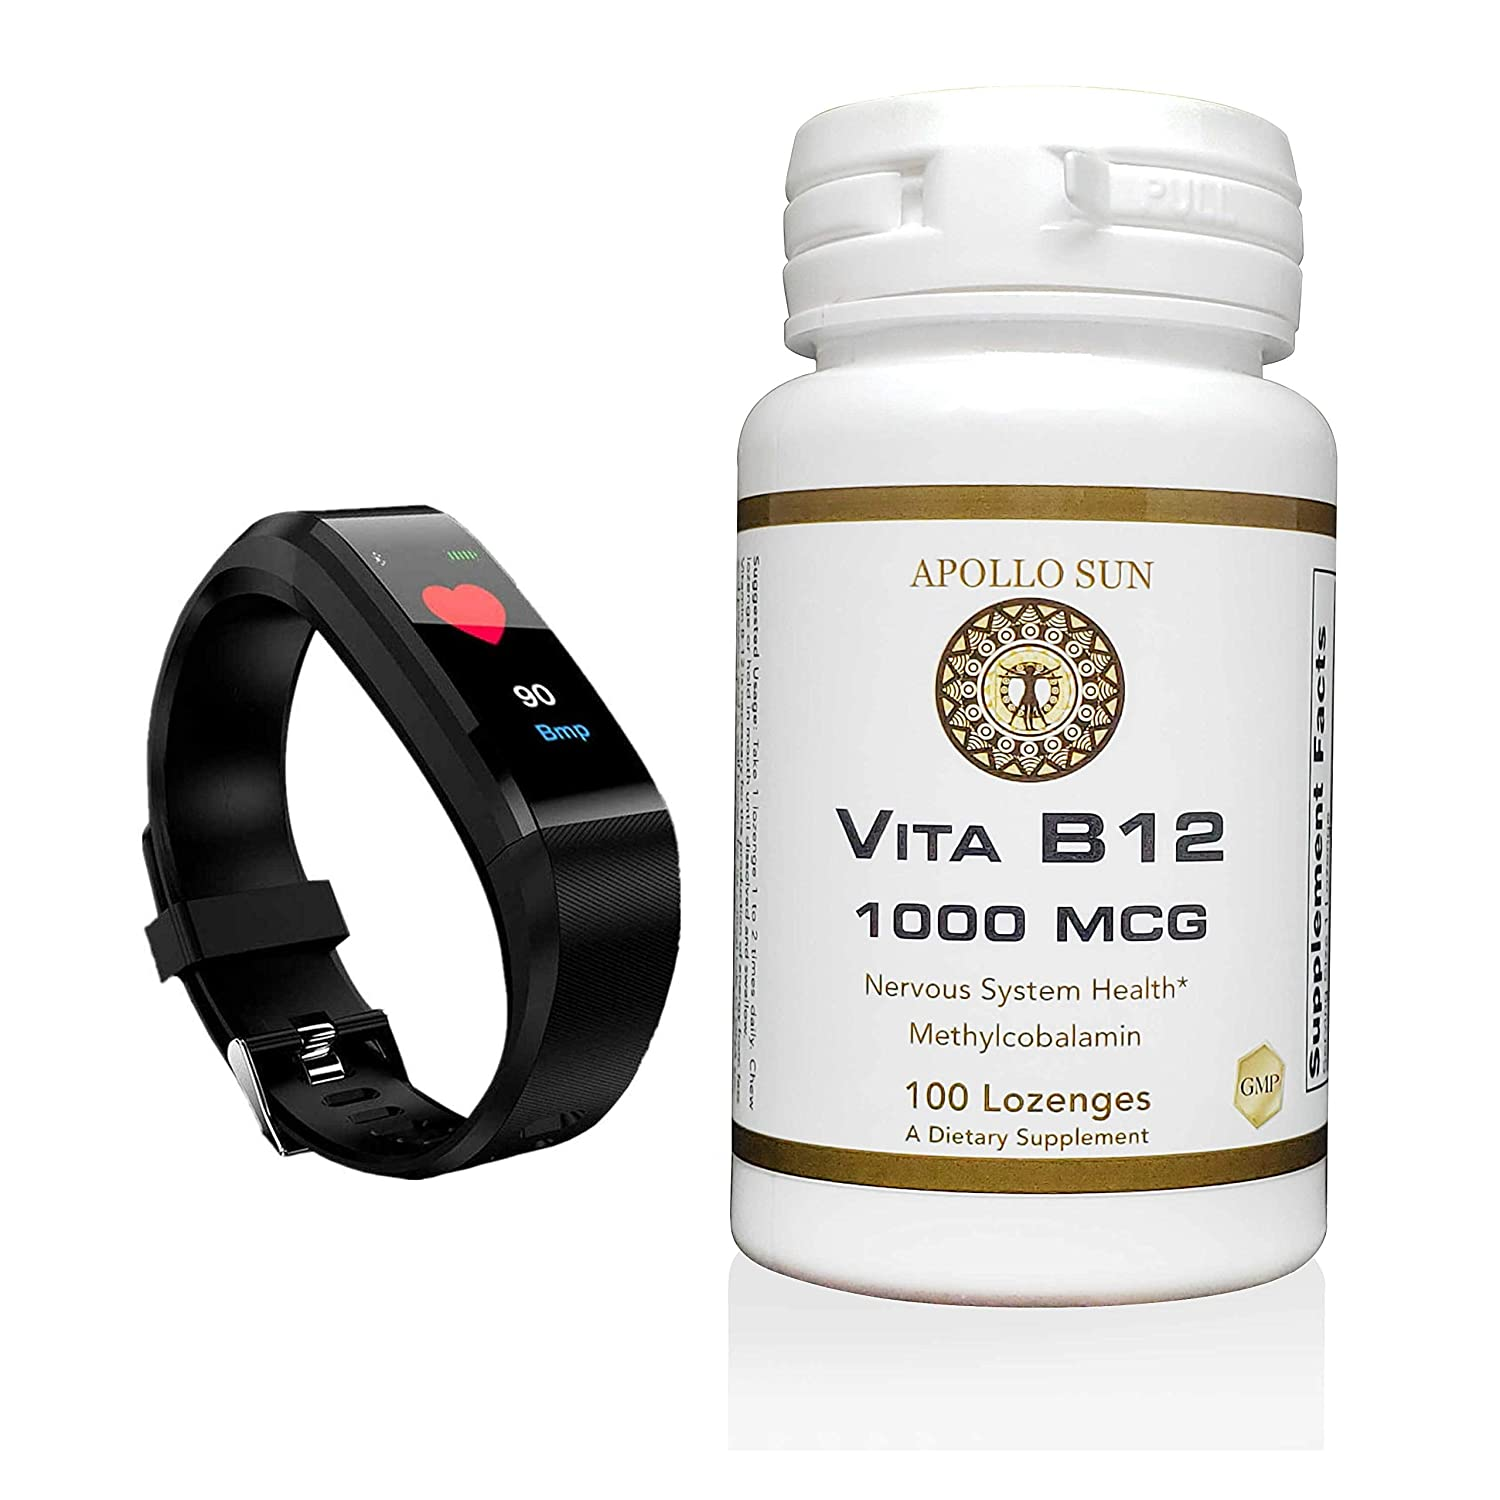 APOLLO SUN Vita B12 1000 Micrograms as Methylcobalamin Dietary Supplement - 100 Vegan Cherry Lozenges (with Smart Fitband Watch)